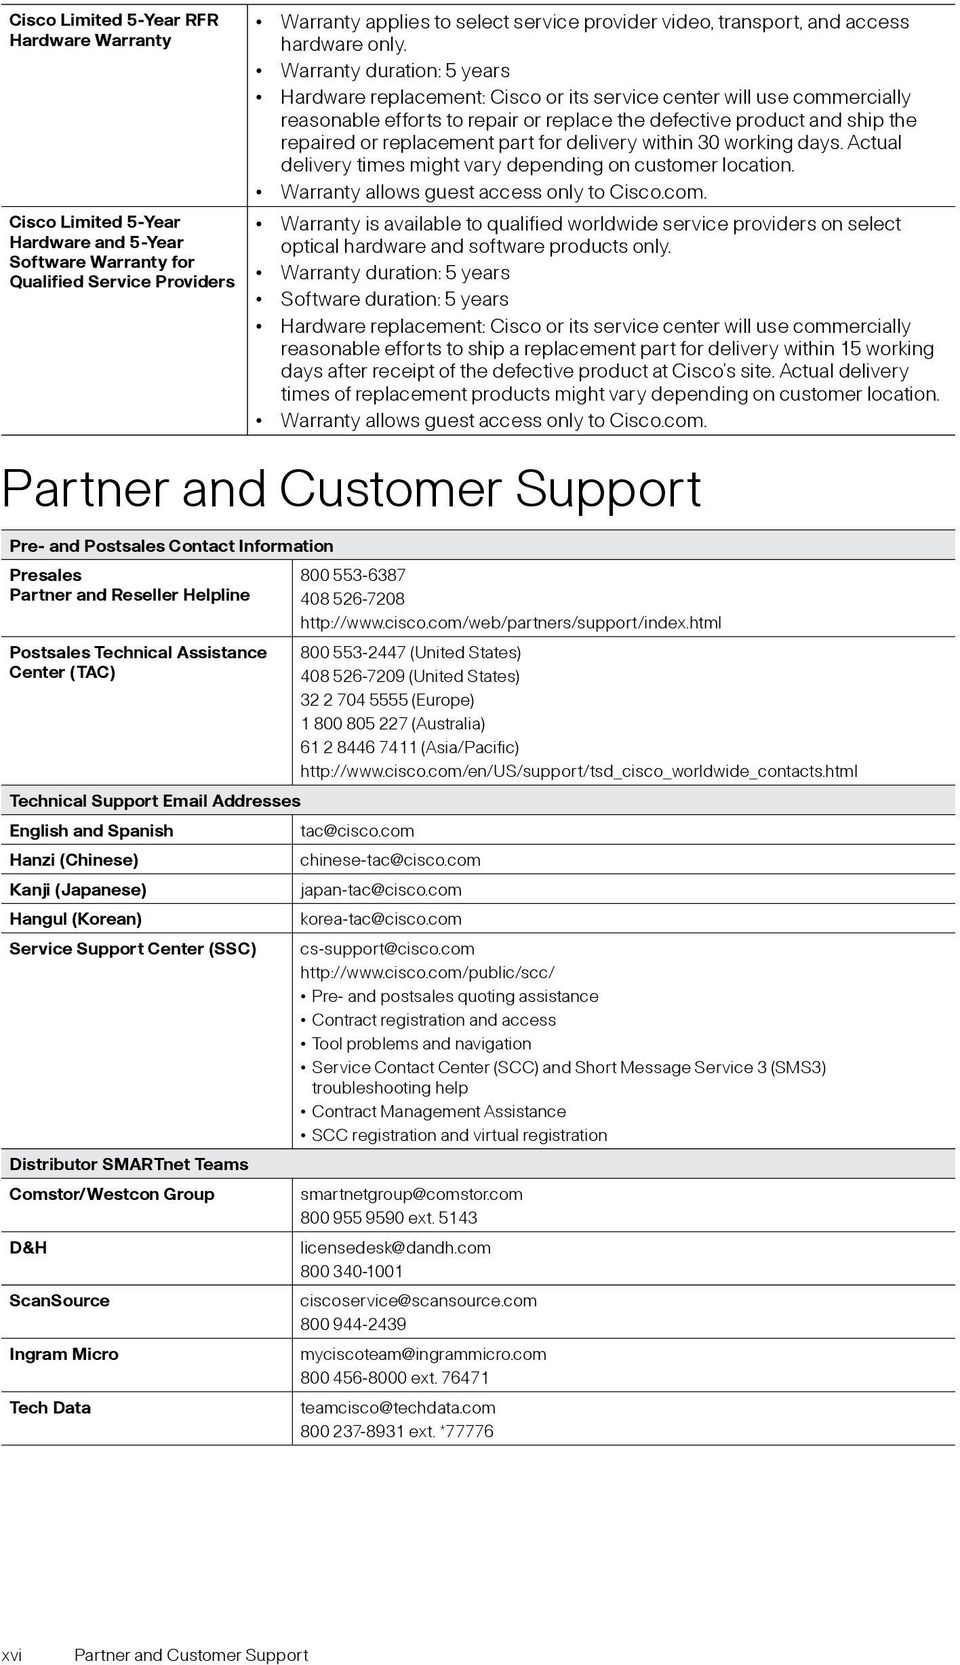 Introduction Cisco Product Quick Reference Guide What S New For Usb Powerinjector Gsm Modem Maximizing And Stabilization Warranty Duration 5 Years Hardware Replacement Or Its Service Center Will Use Commercially